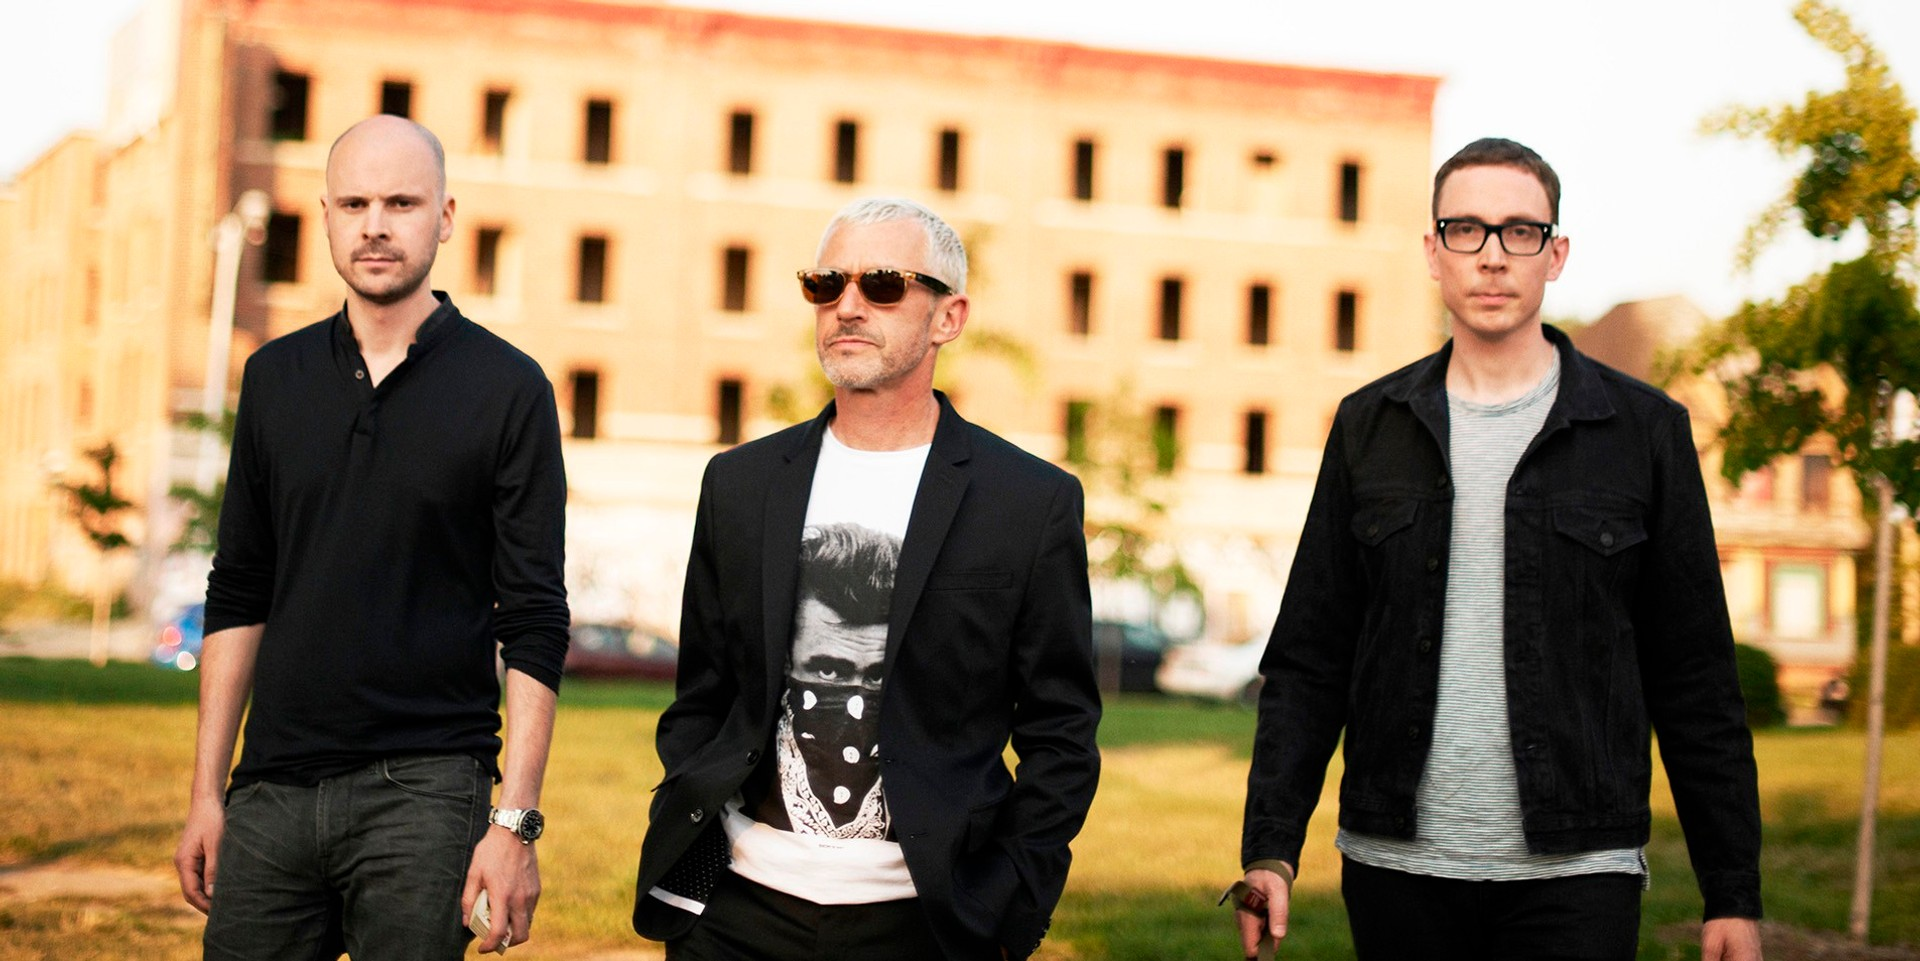 Trance mavens Above & Beyond talk their latest album Common Ground, running Anjunabeats, self-care and more